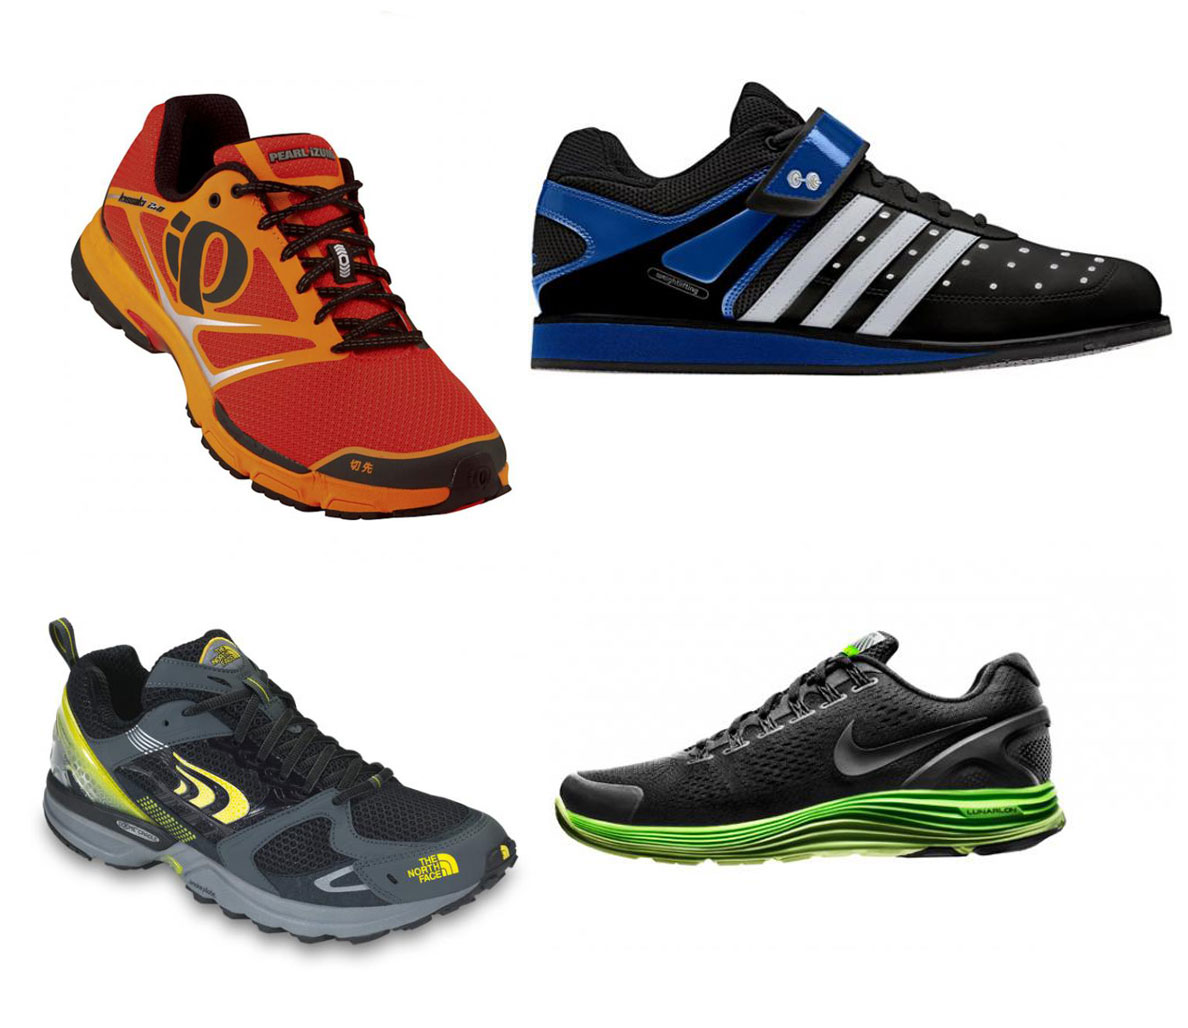 10 Best Running Shoes for Guys with Problem Feet | Men's ...